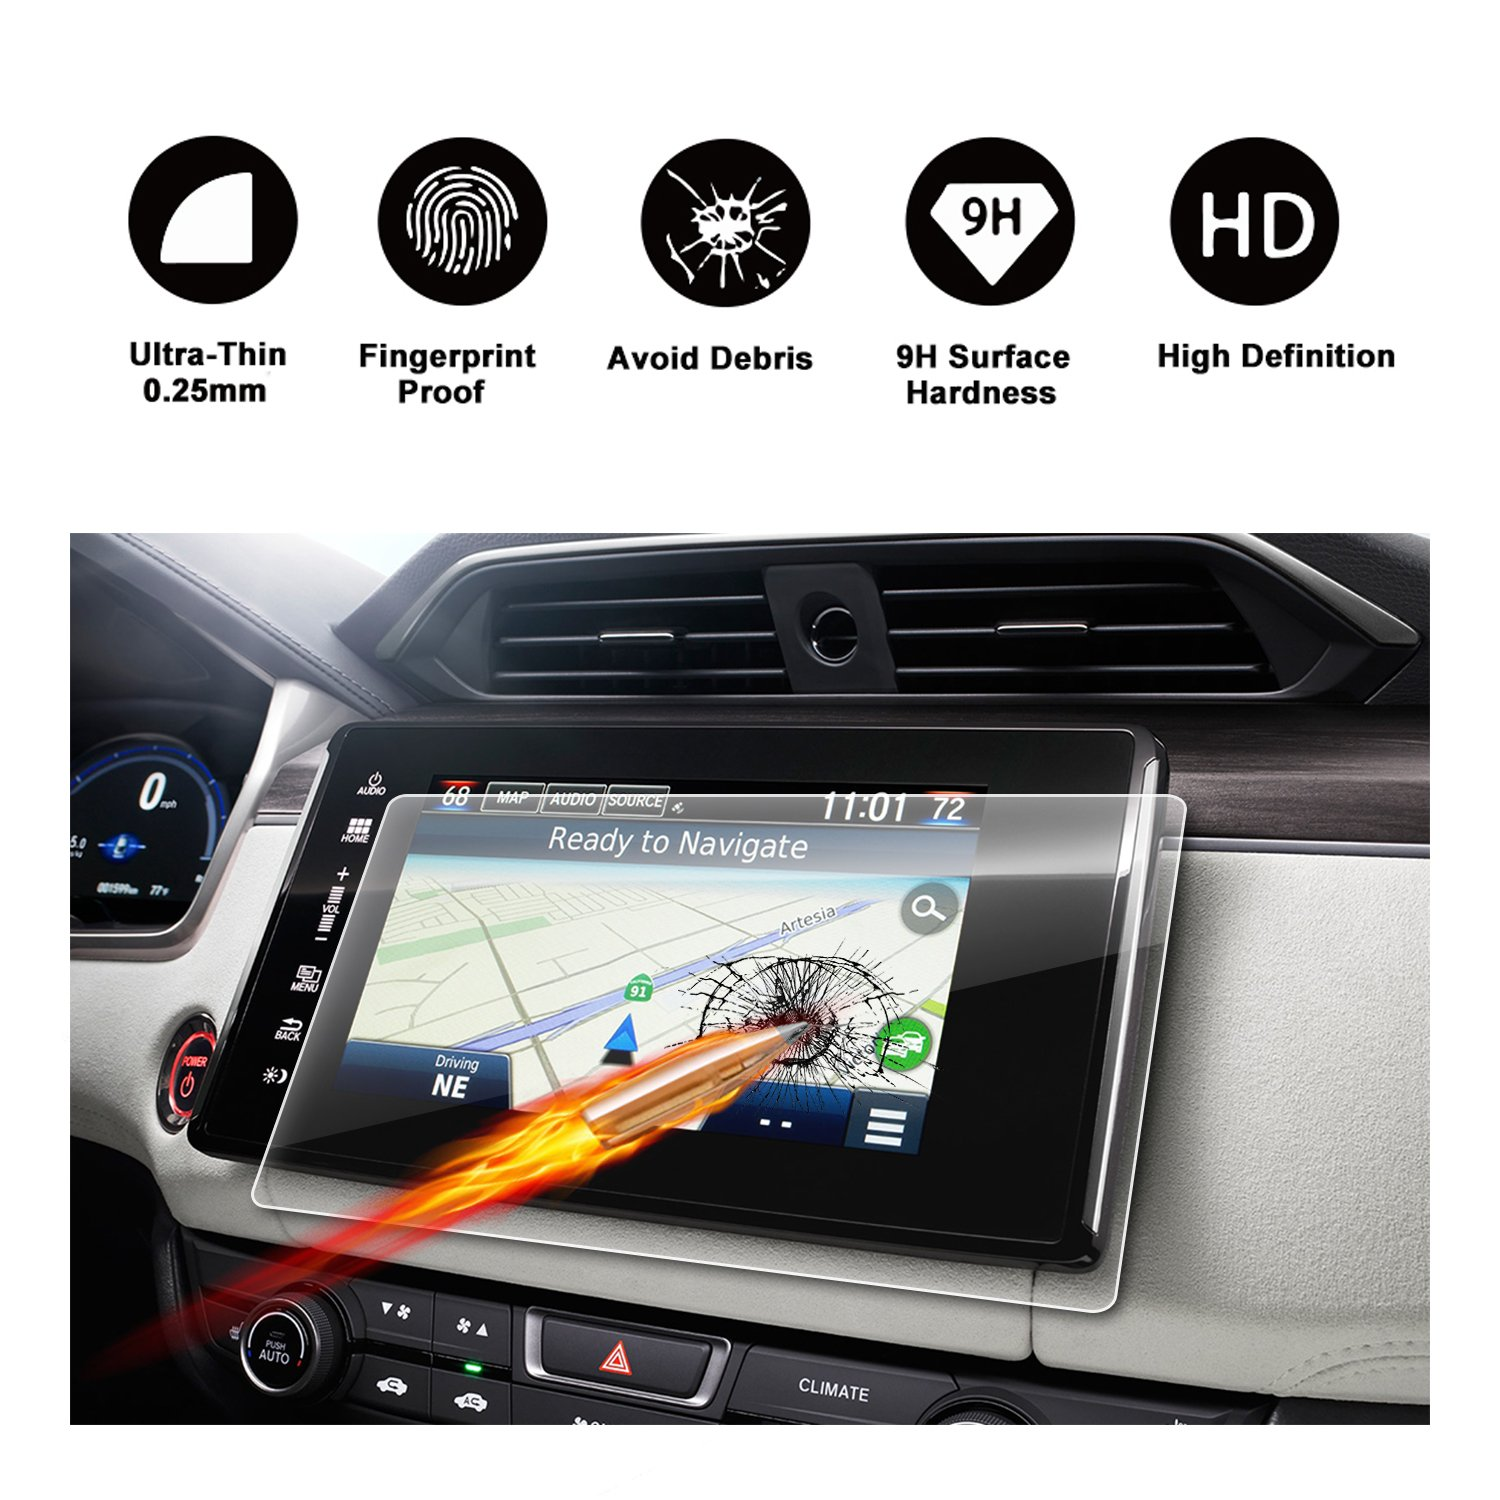 2018 Clarity Connect HondaLink 8-Inch Touch Screen Car Display Navigation Screen Protector, R RUIYA HD Clear Tempered Glass Protective Film by R RUIYA